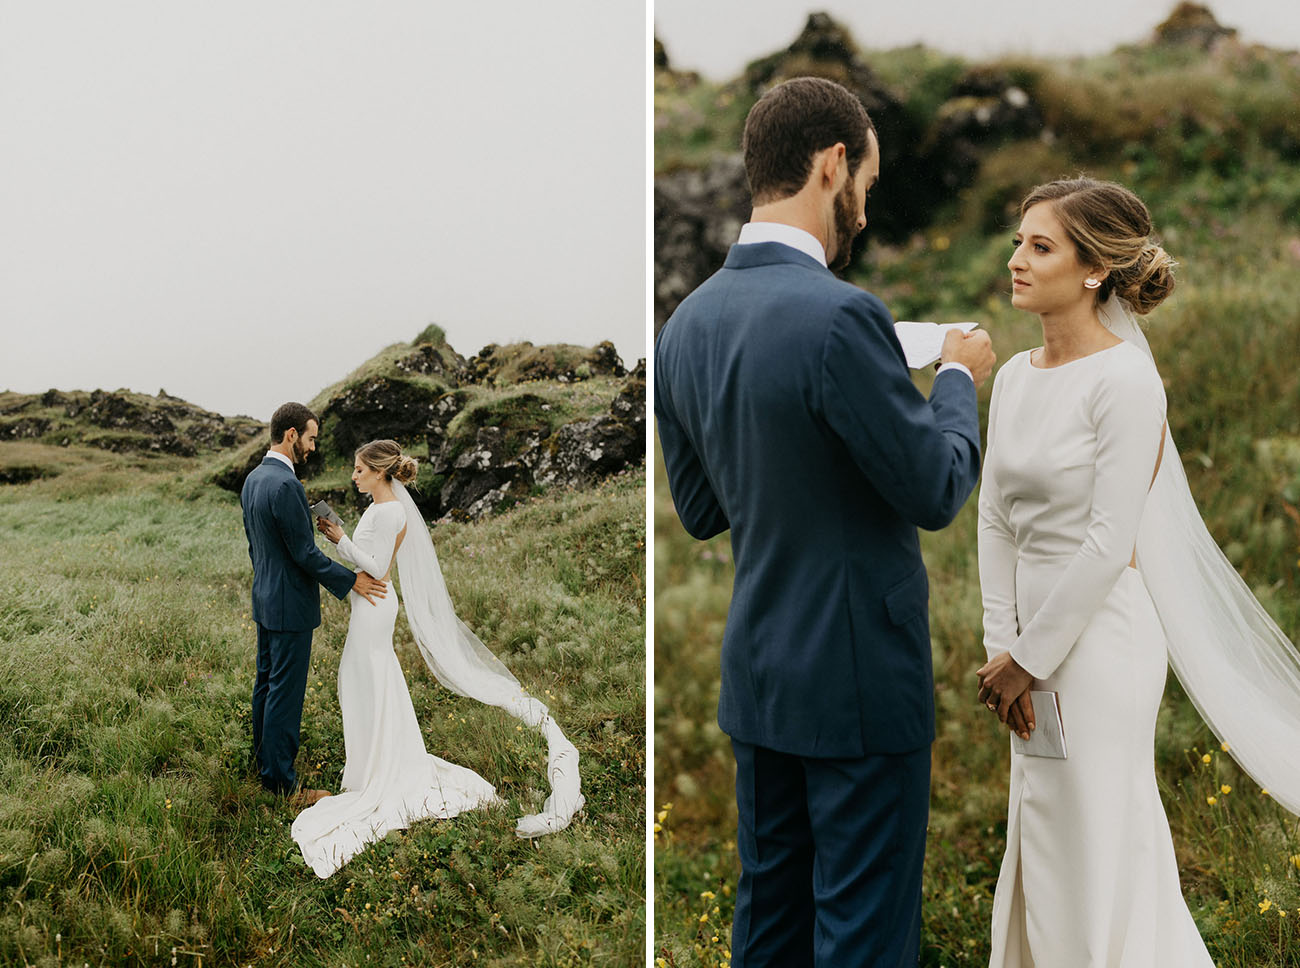 She was wearing a low bun with a veil for the ceremony and first looks